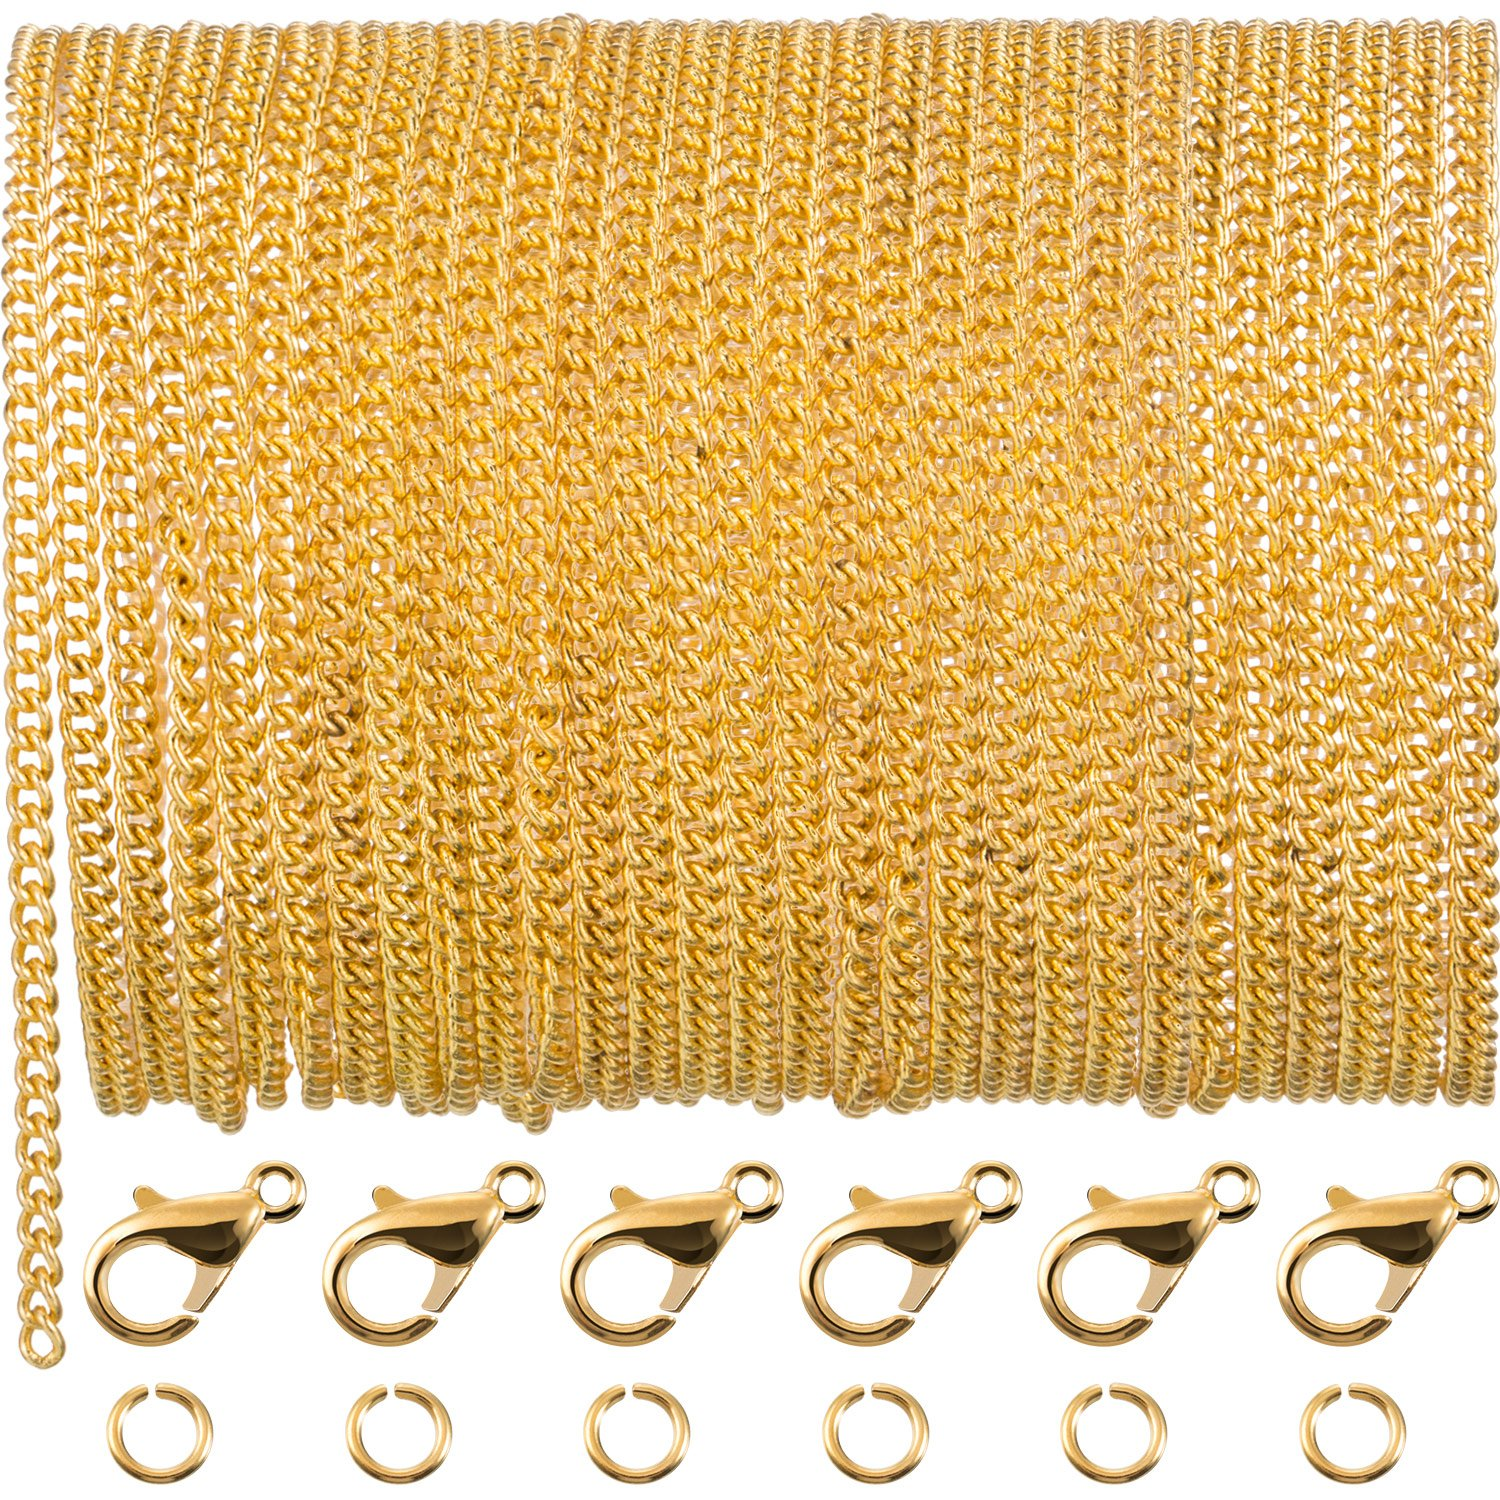 33 Feet Gold Plated Link Chain Necklace with 30 Jump Rings and 20 Lobster Clasps for Men Women Jewelry Chain DIY Making (1.5 mm) TecUnite